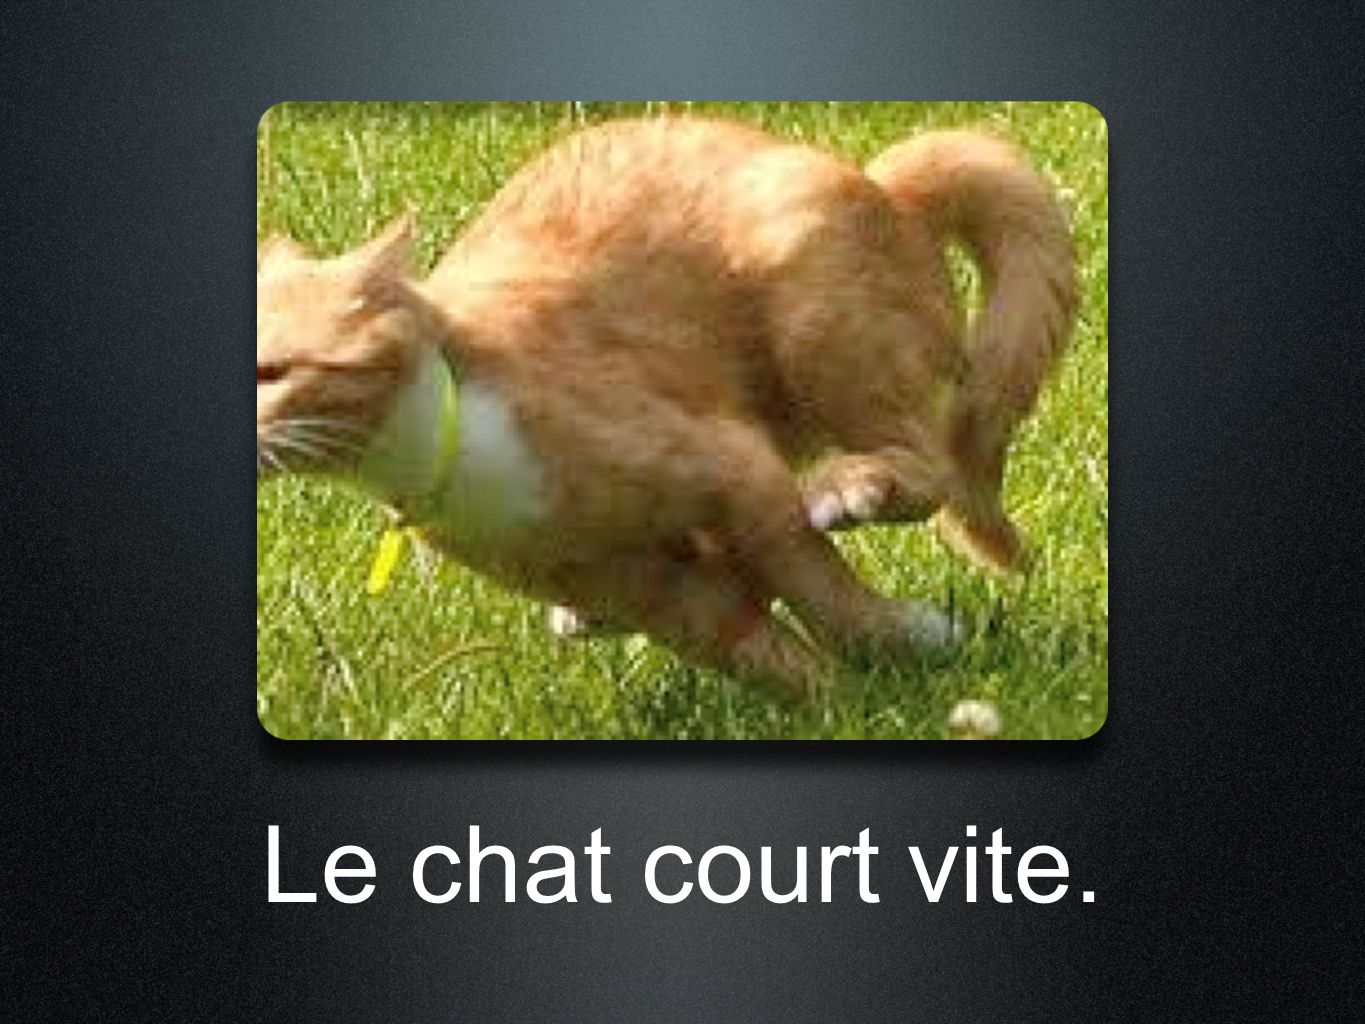 Le chat court vite.